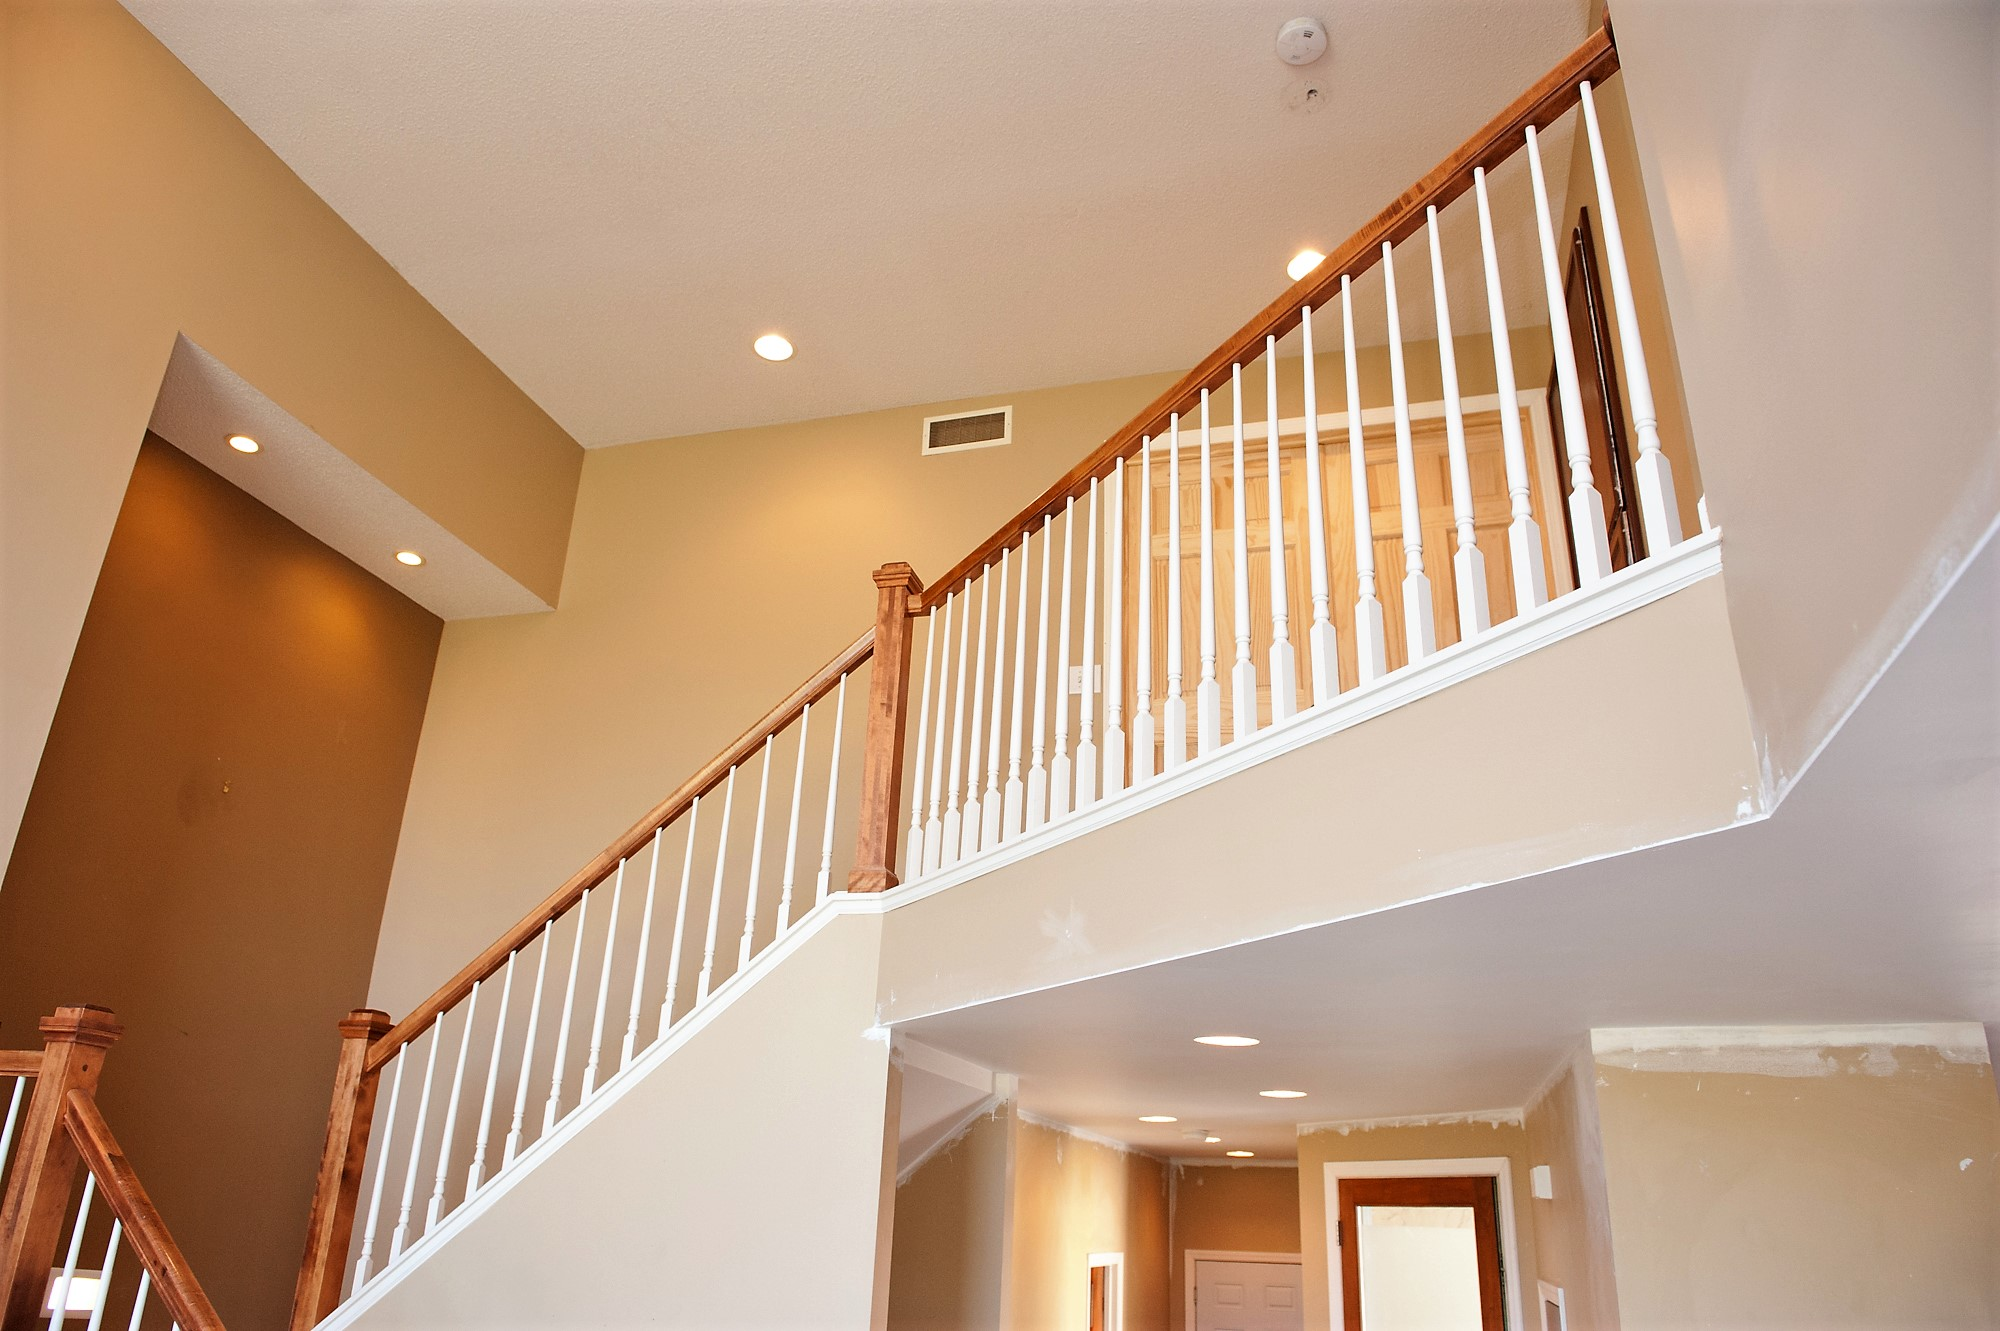 18 Antes Upstairs Staircase.JPG